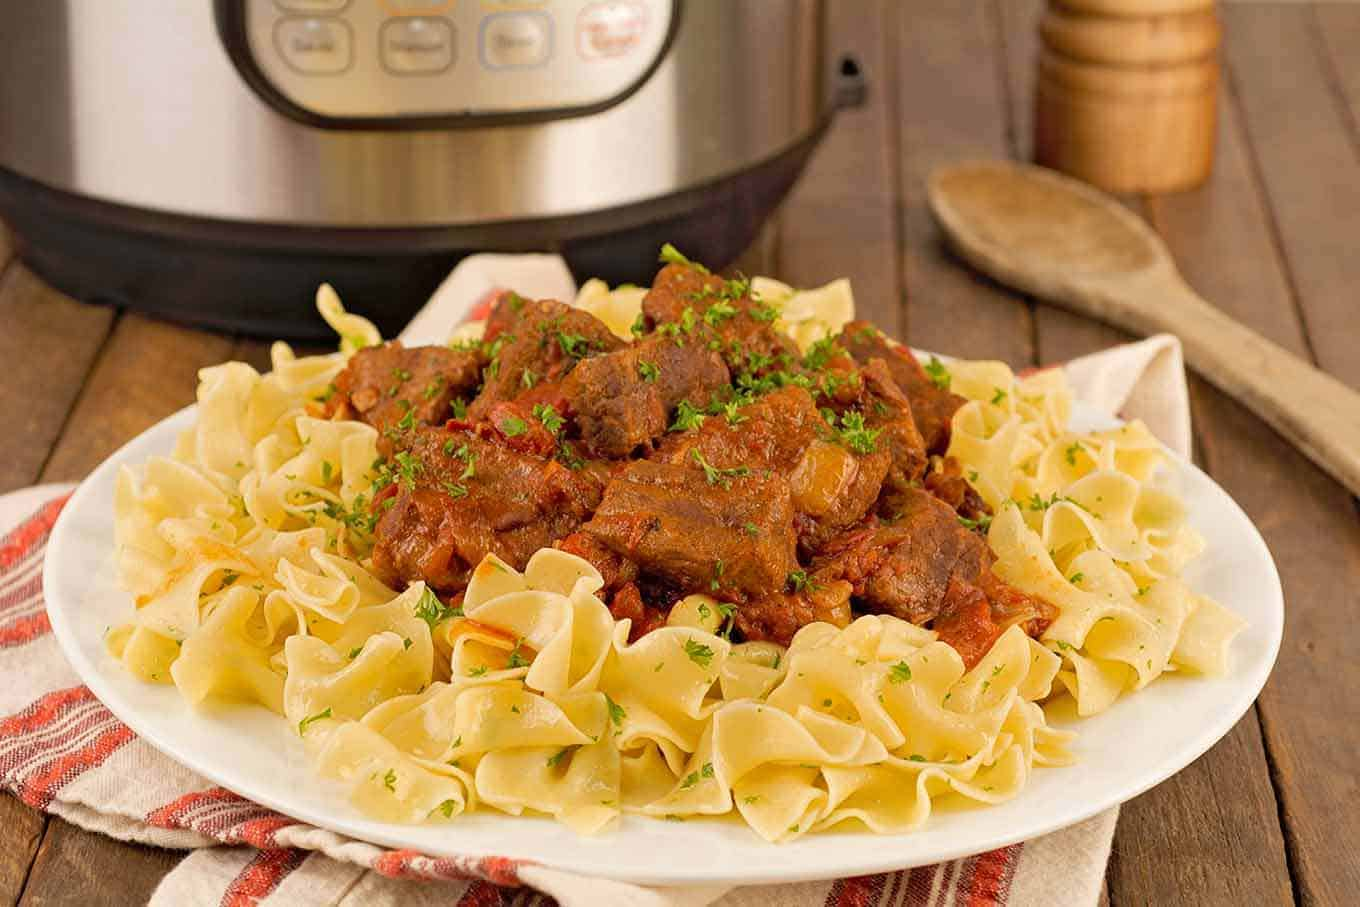 Plate of egg noodles and beef goulash garnished with chopped parsley